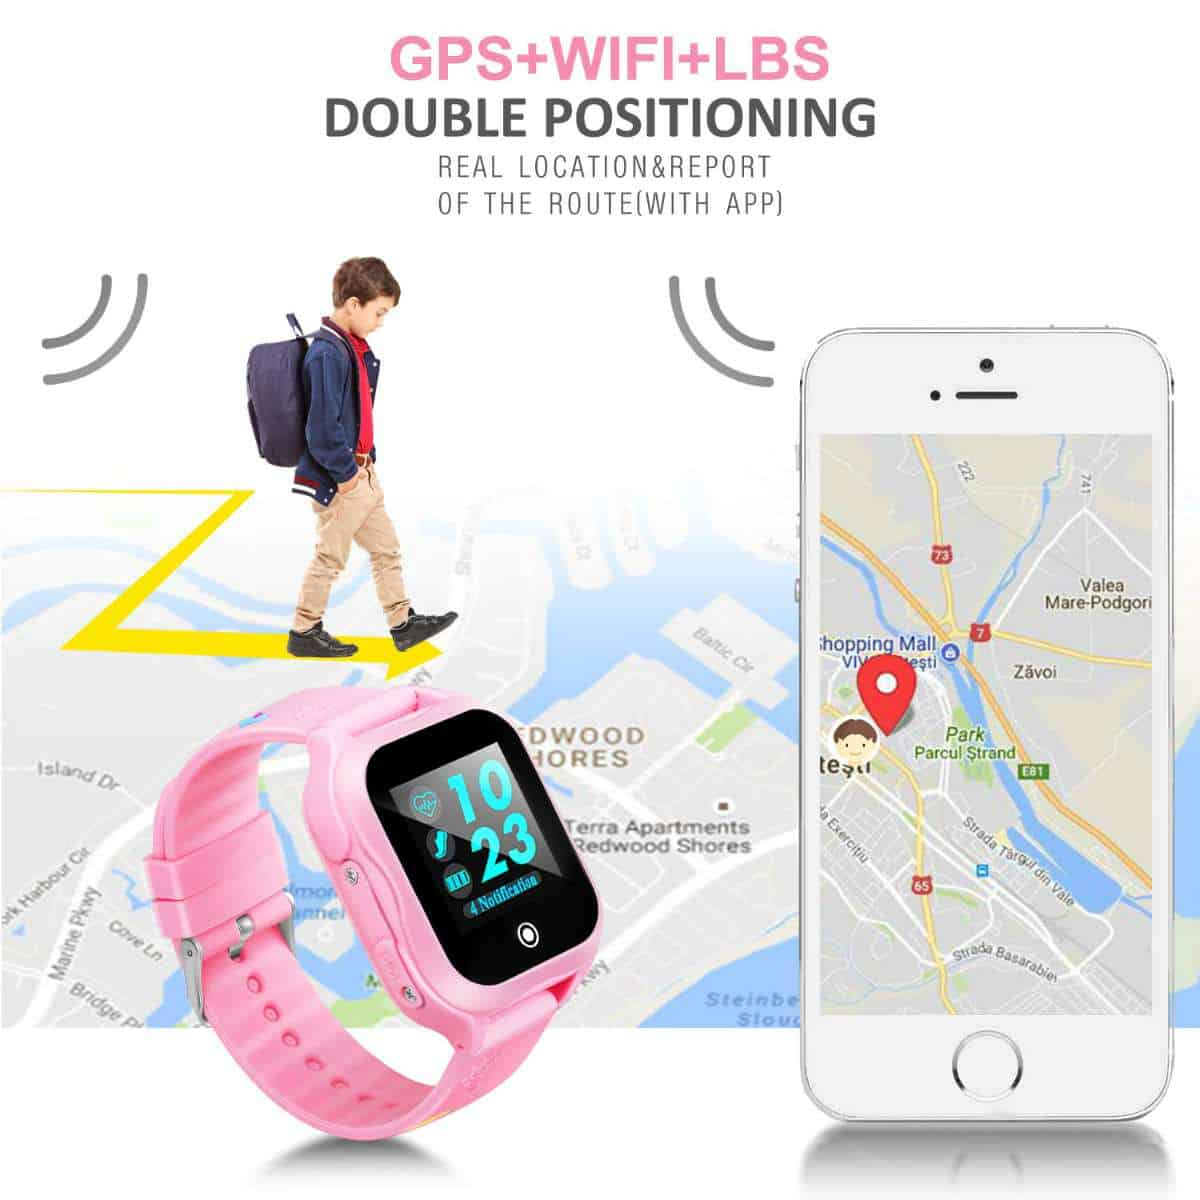 IP67 Waterproof GPS Tracker with SOS Emergency Call | Best GPS-Enabled Kids Watches | Child Safety For The Modern Family